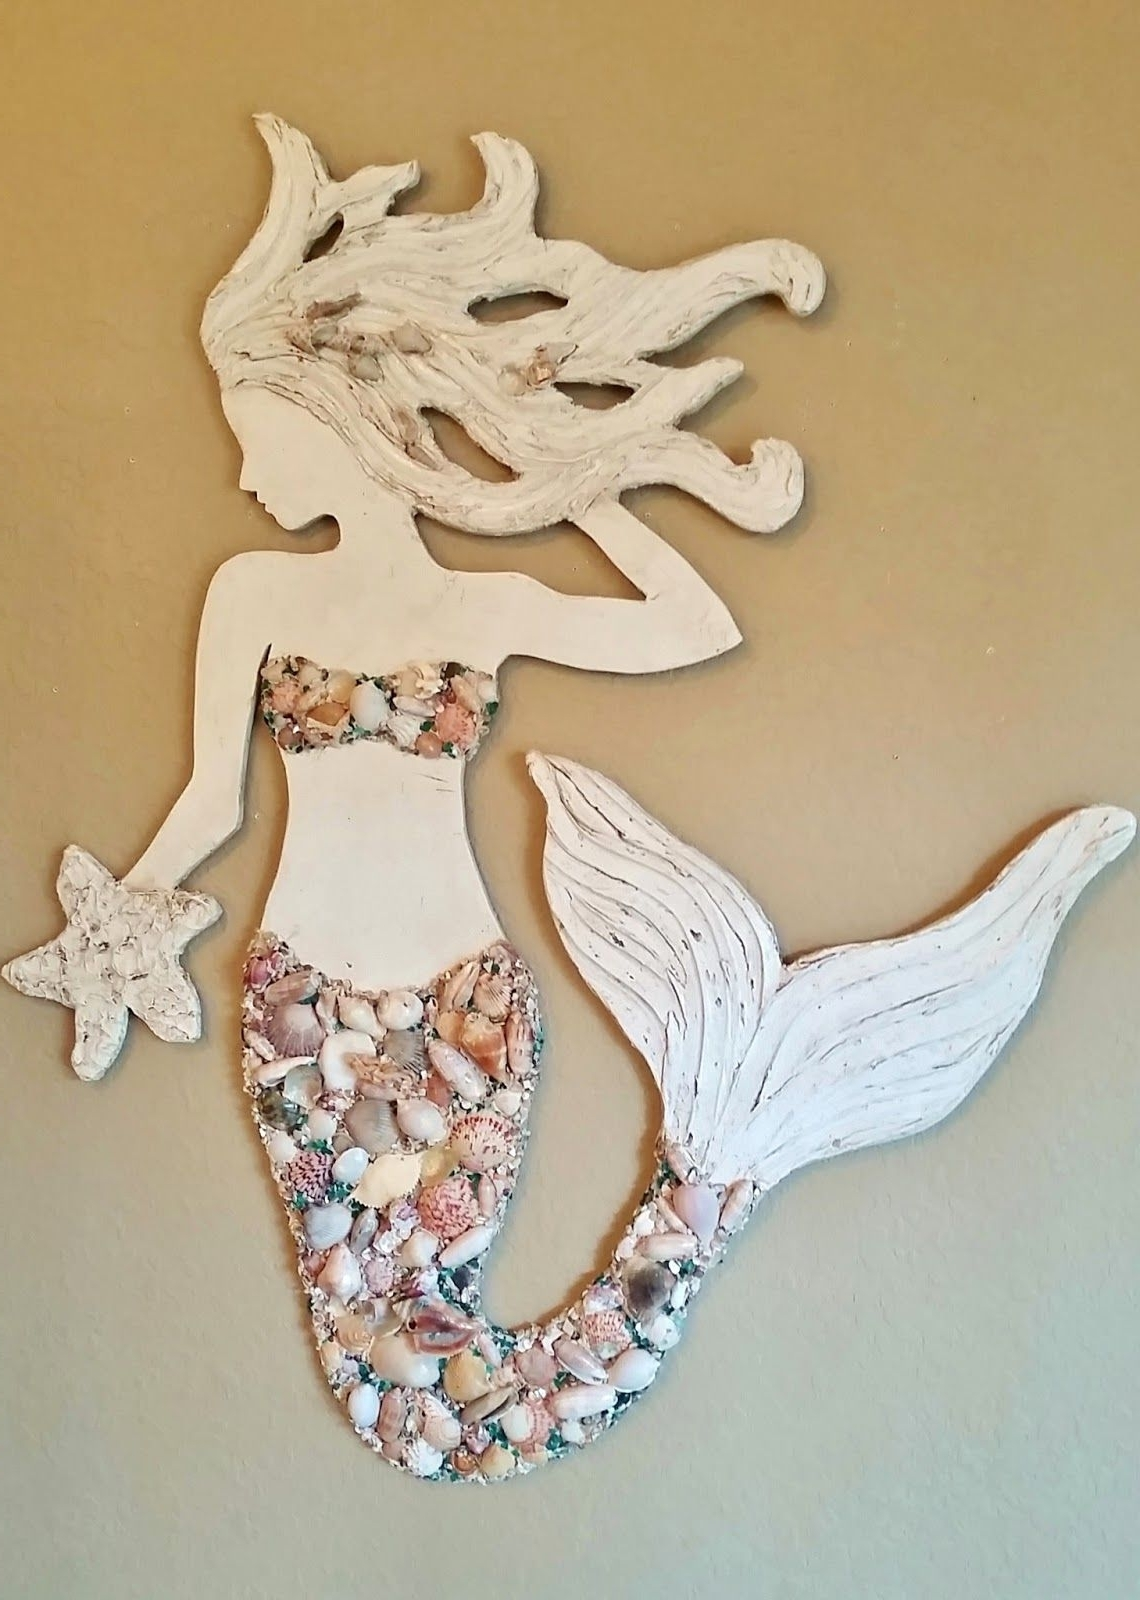 Most Current Mermaid Wall Art New Design, Wood Mermaid Vertical Style Beach  Art In Wooden